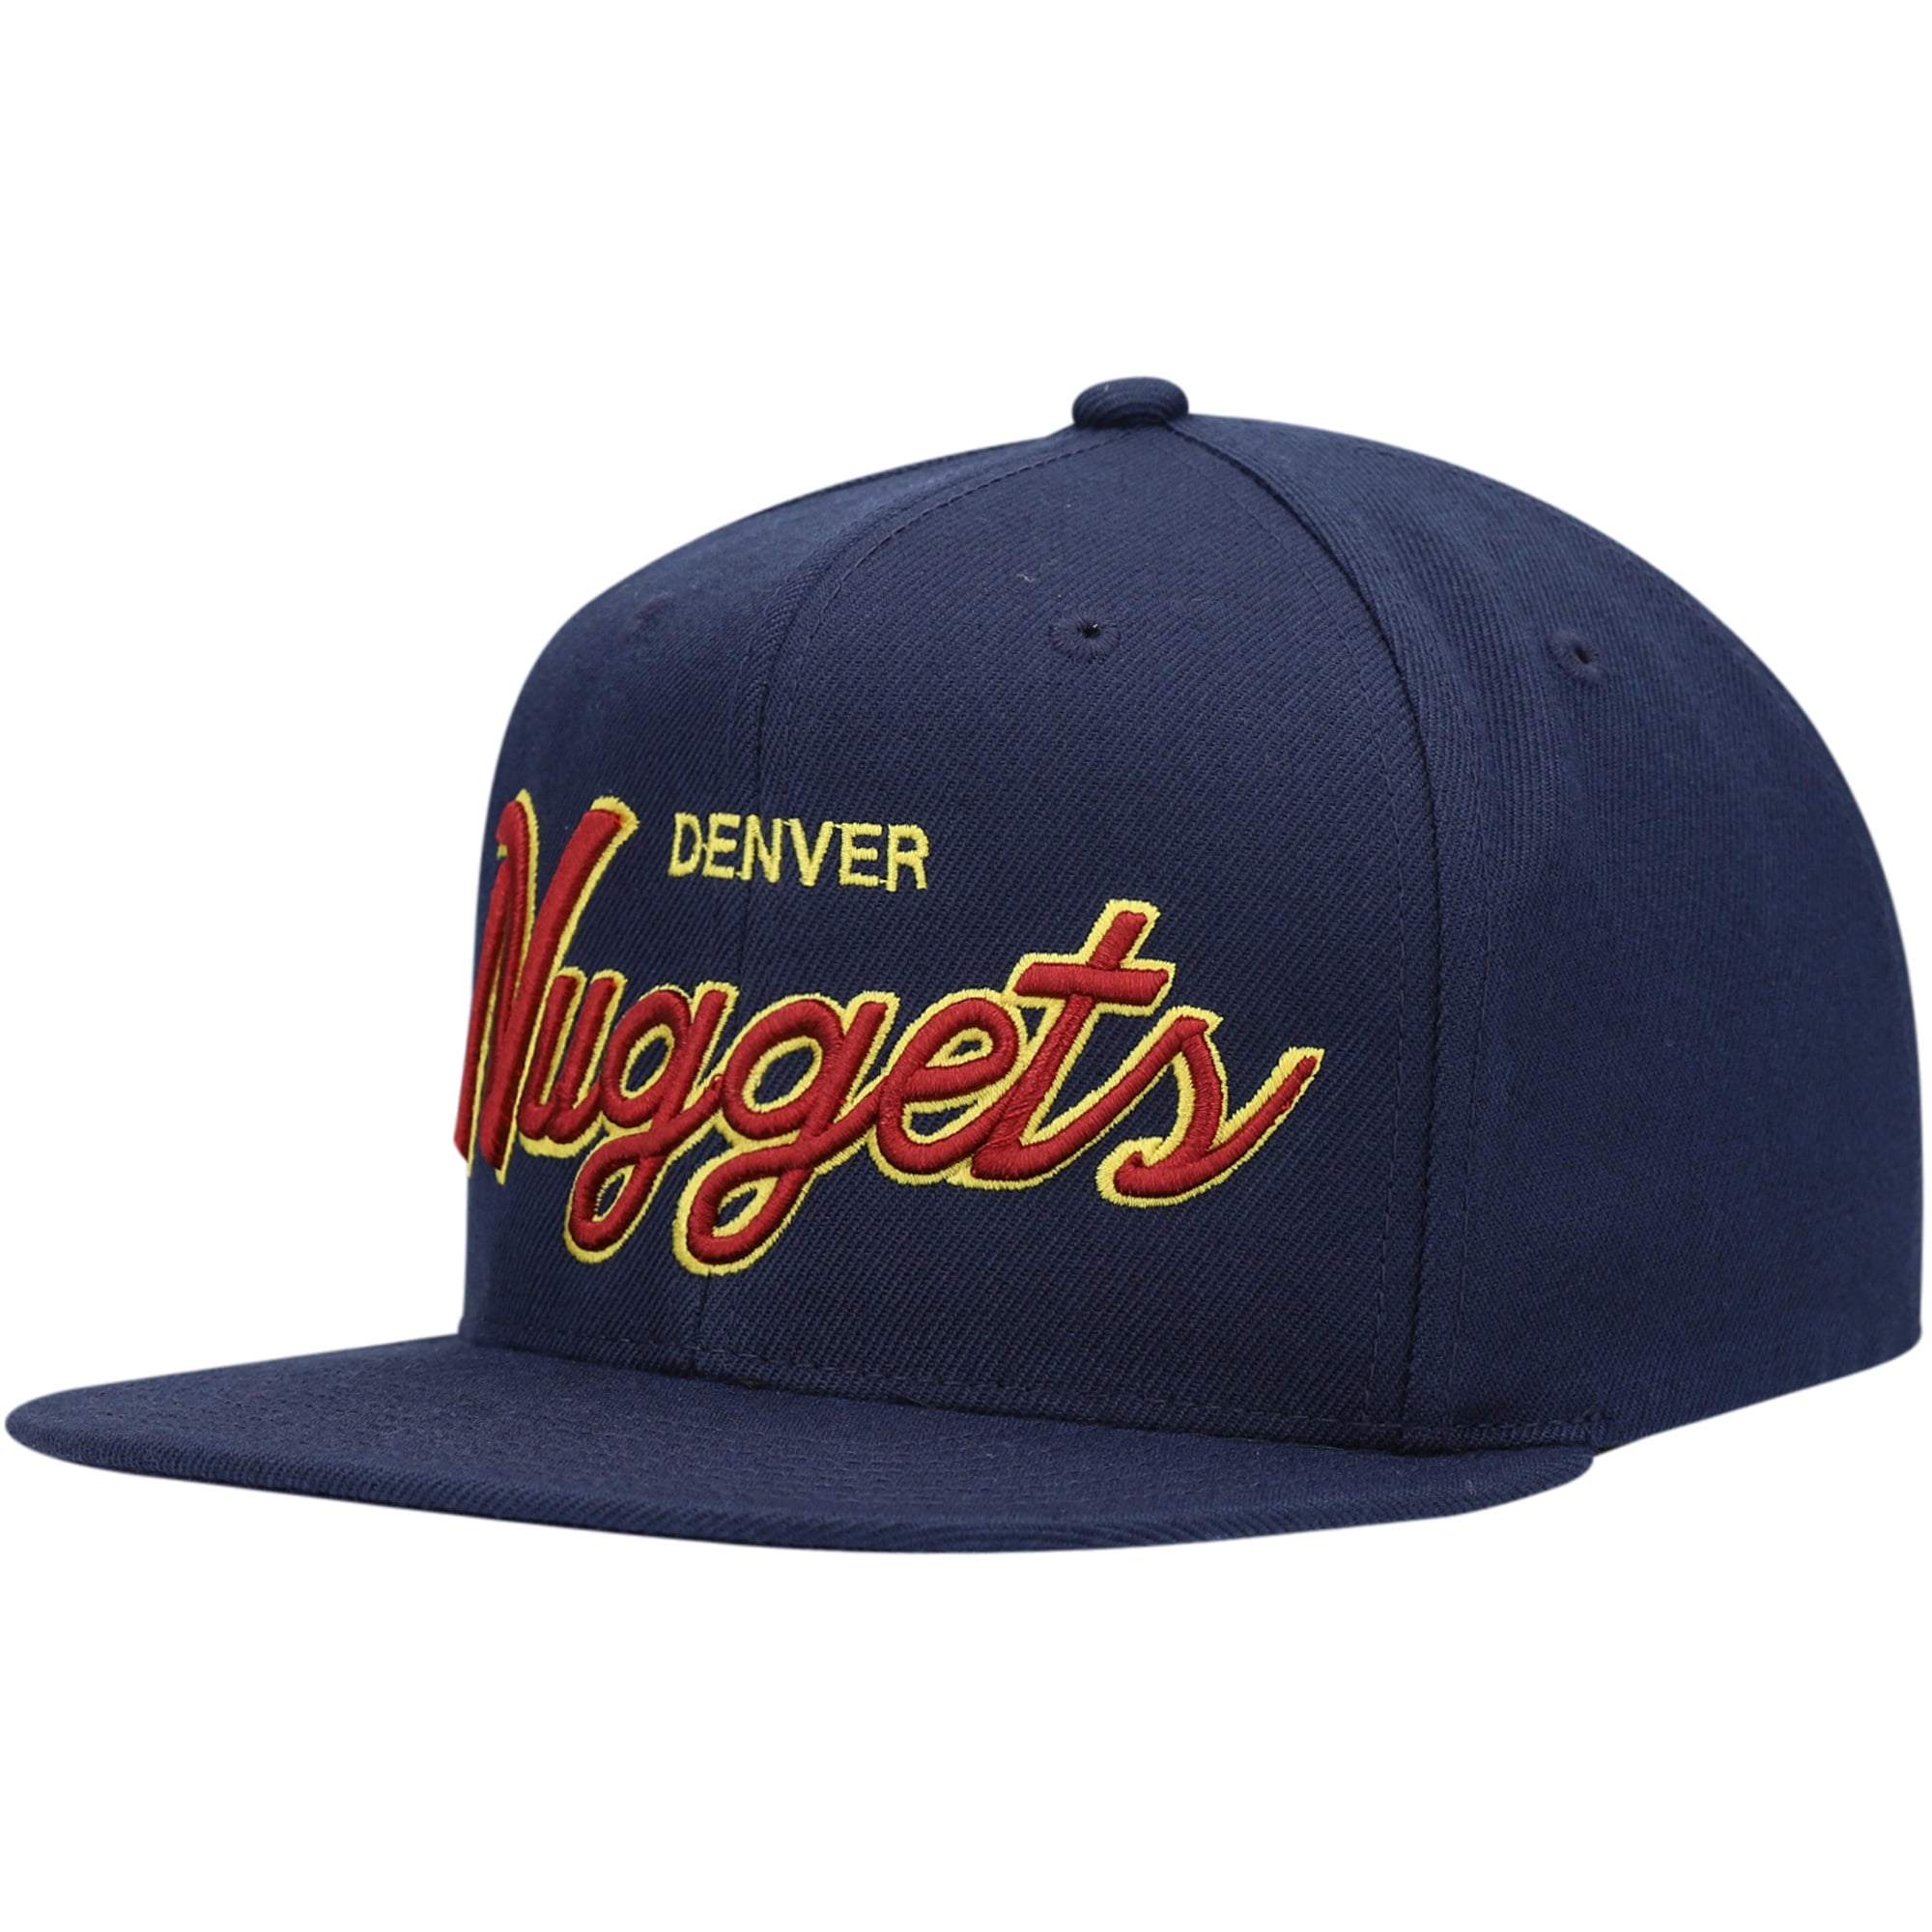 Denver Nuggets Mitchell & Ness Script Snapback Hat - Navy